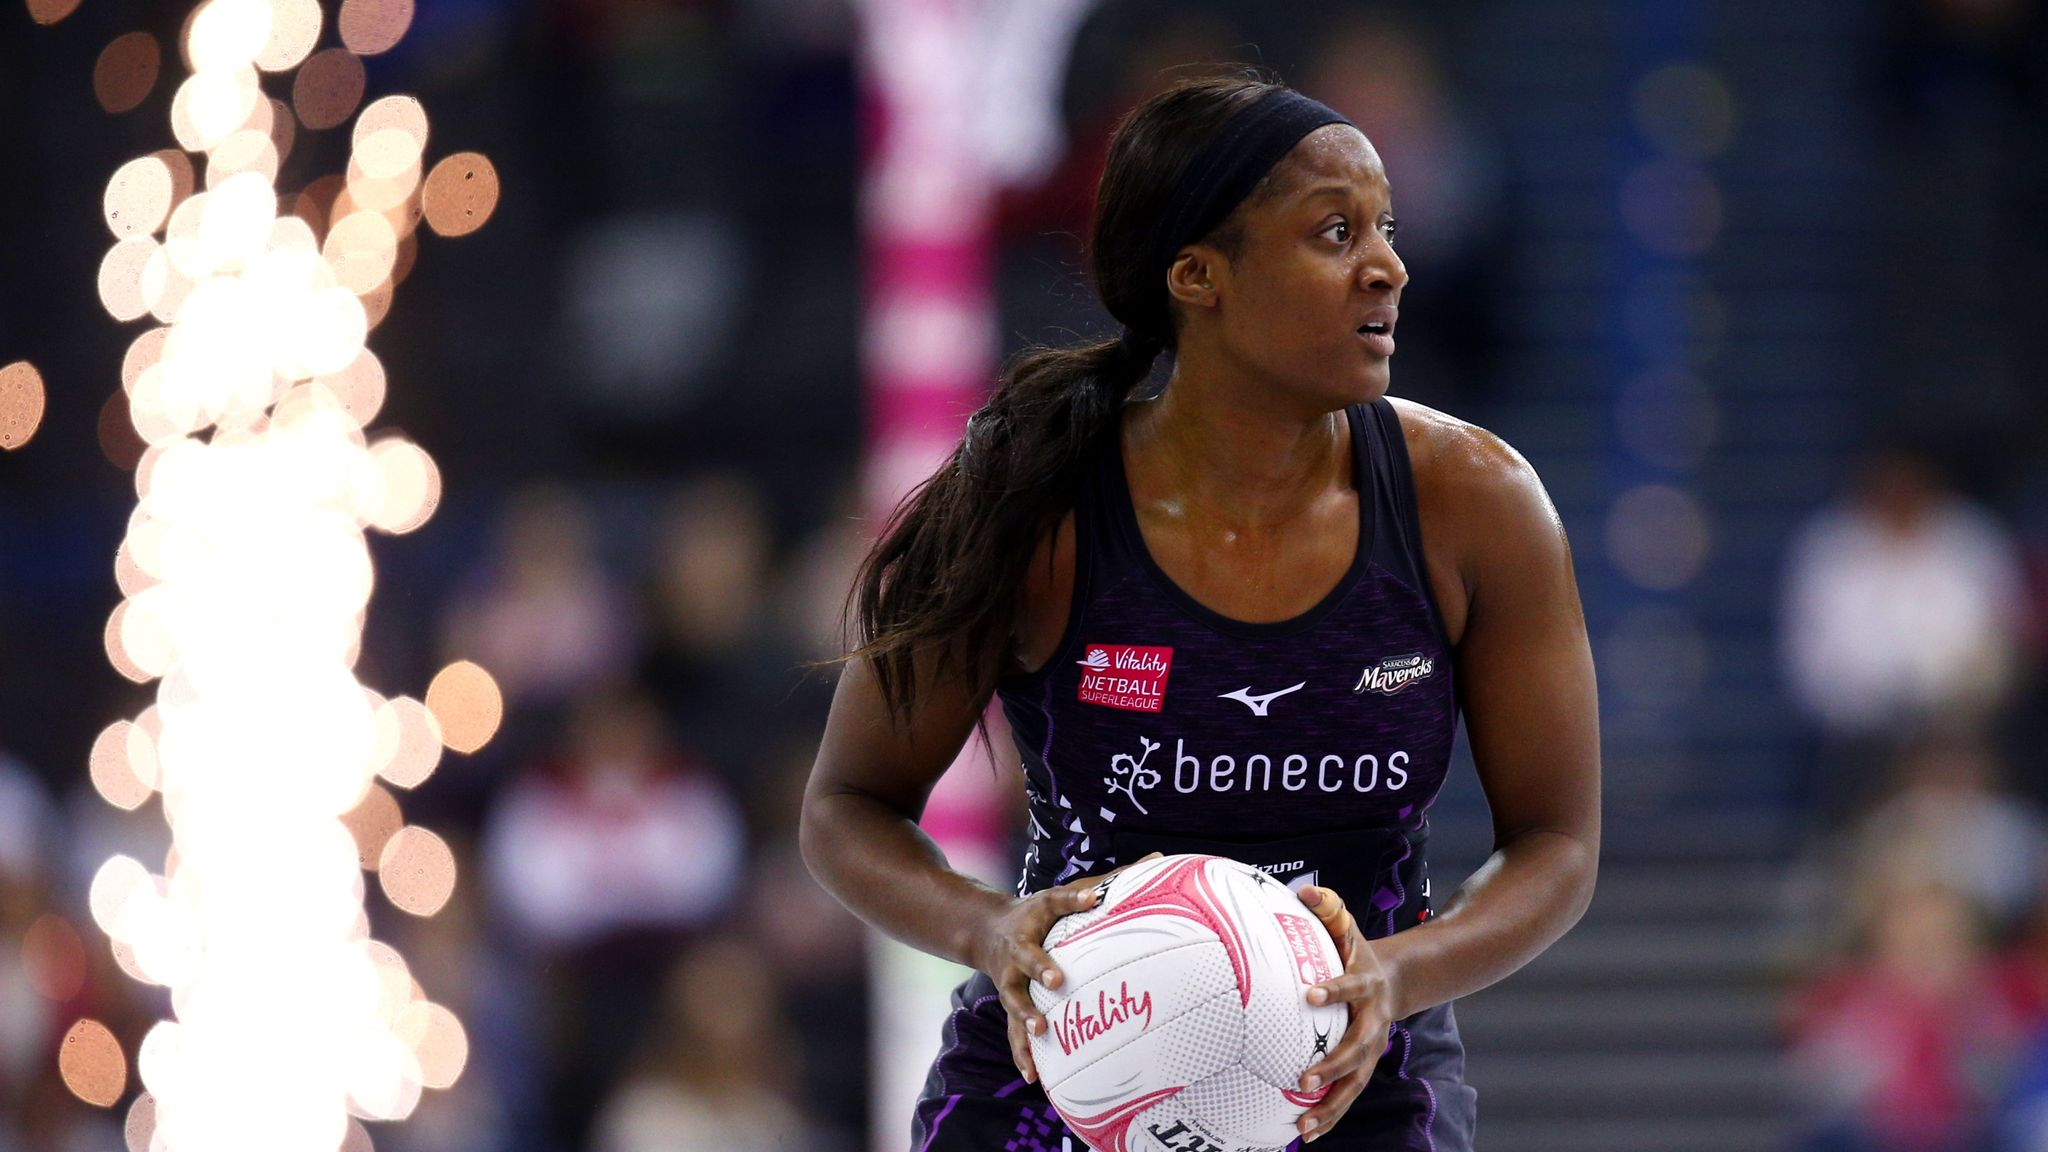 Ama Agbeze and Jhaniele Fowler join Mavericks for Fast5 All-Star competition